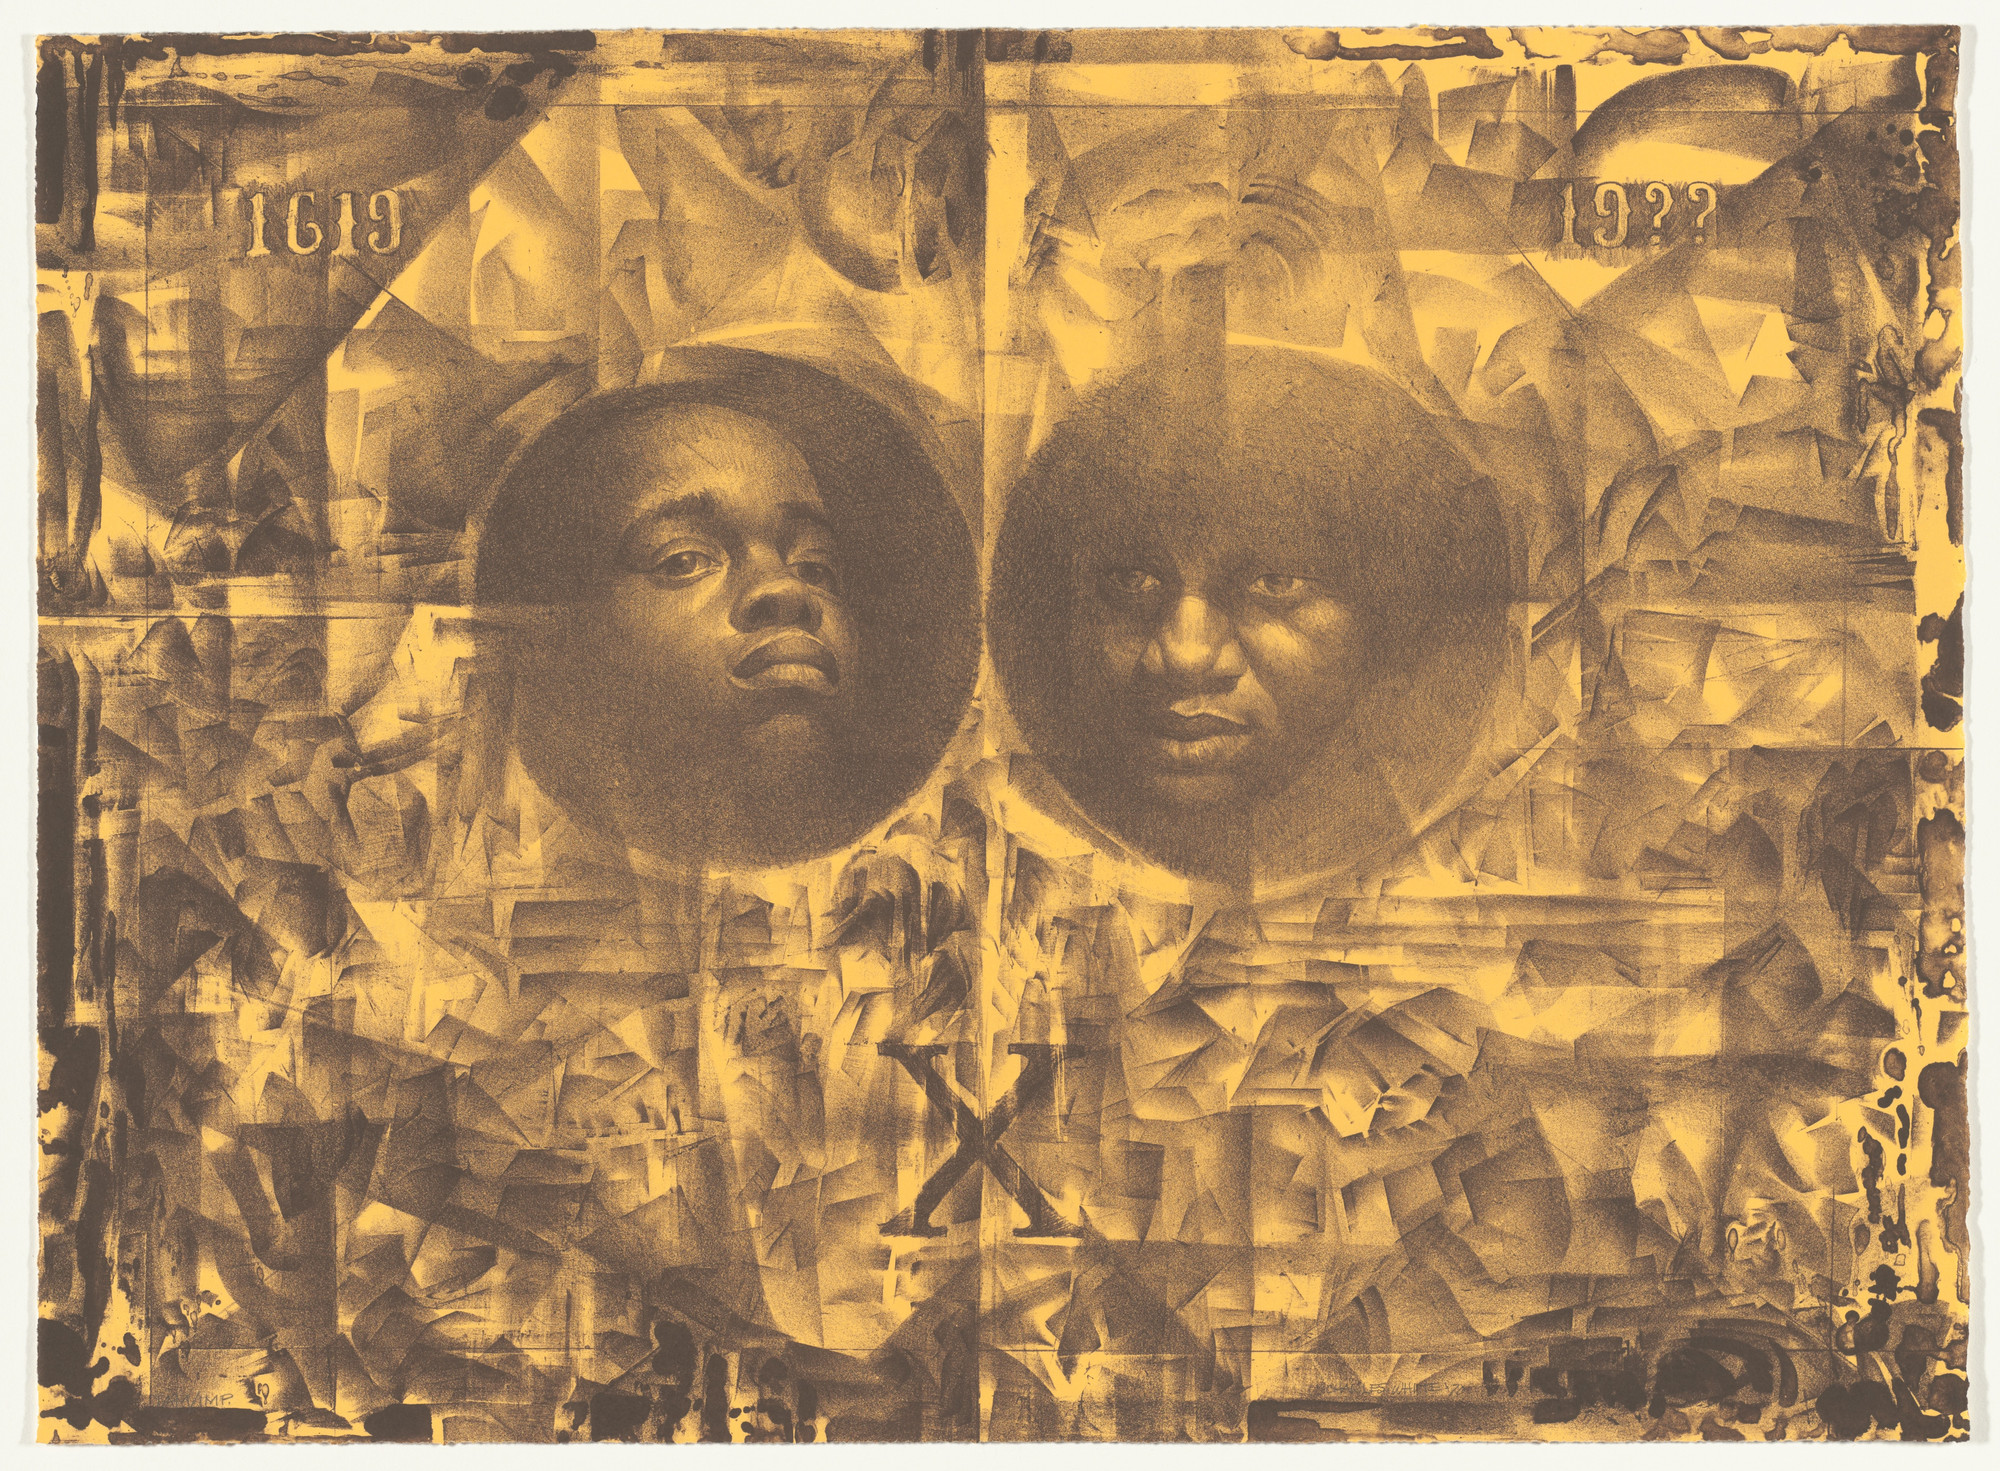 Charles White. Wanted Poster Series #14a. 1970